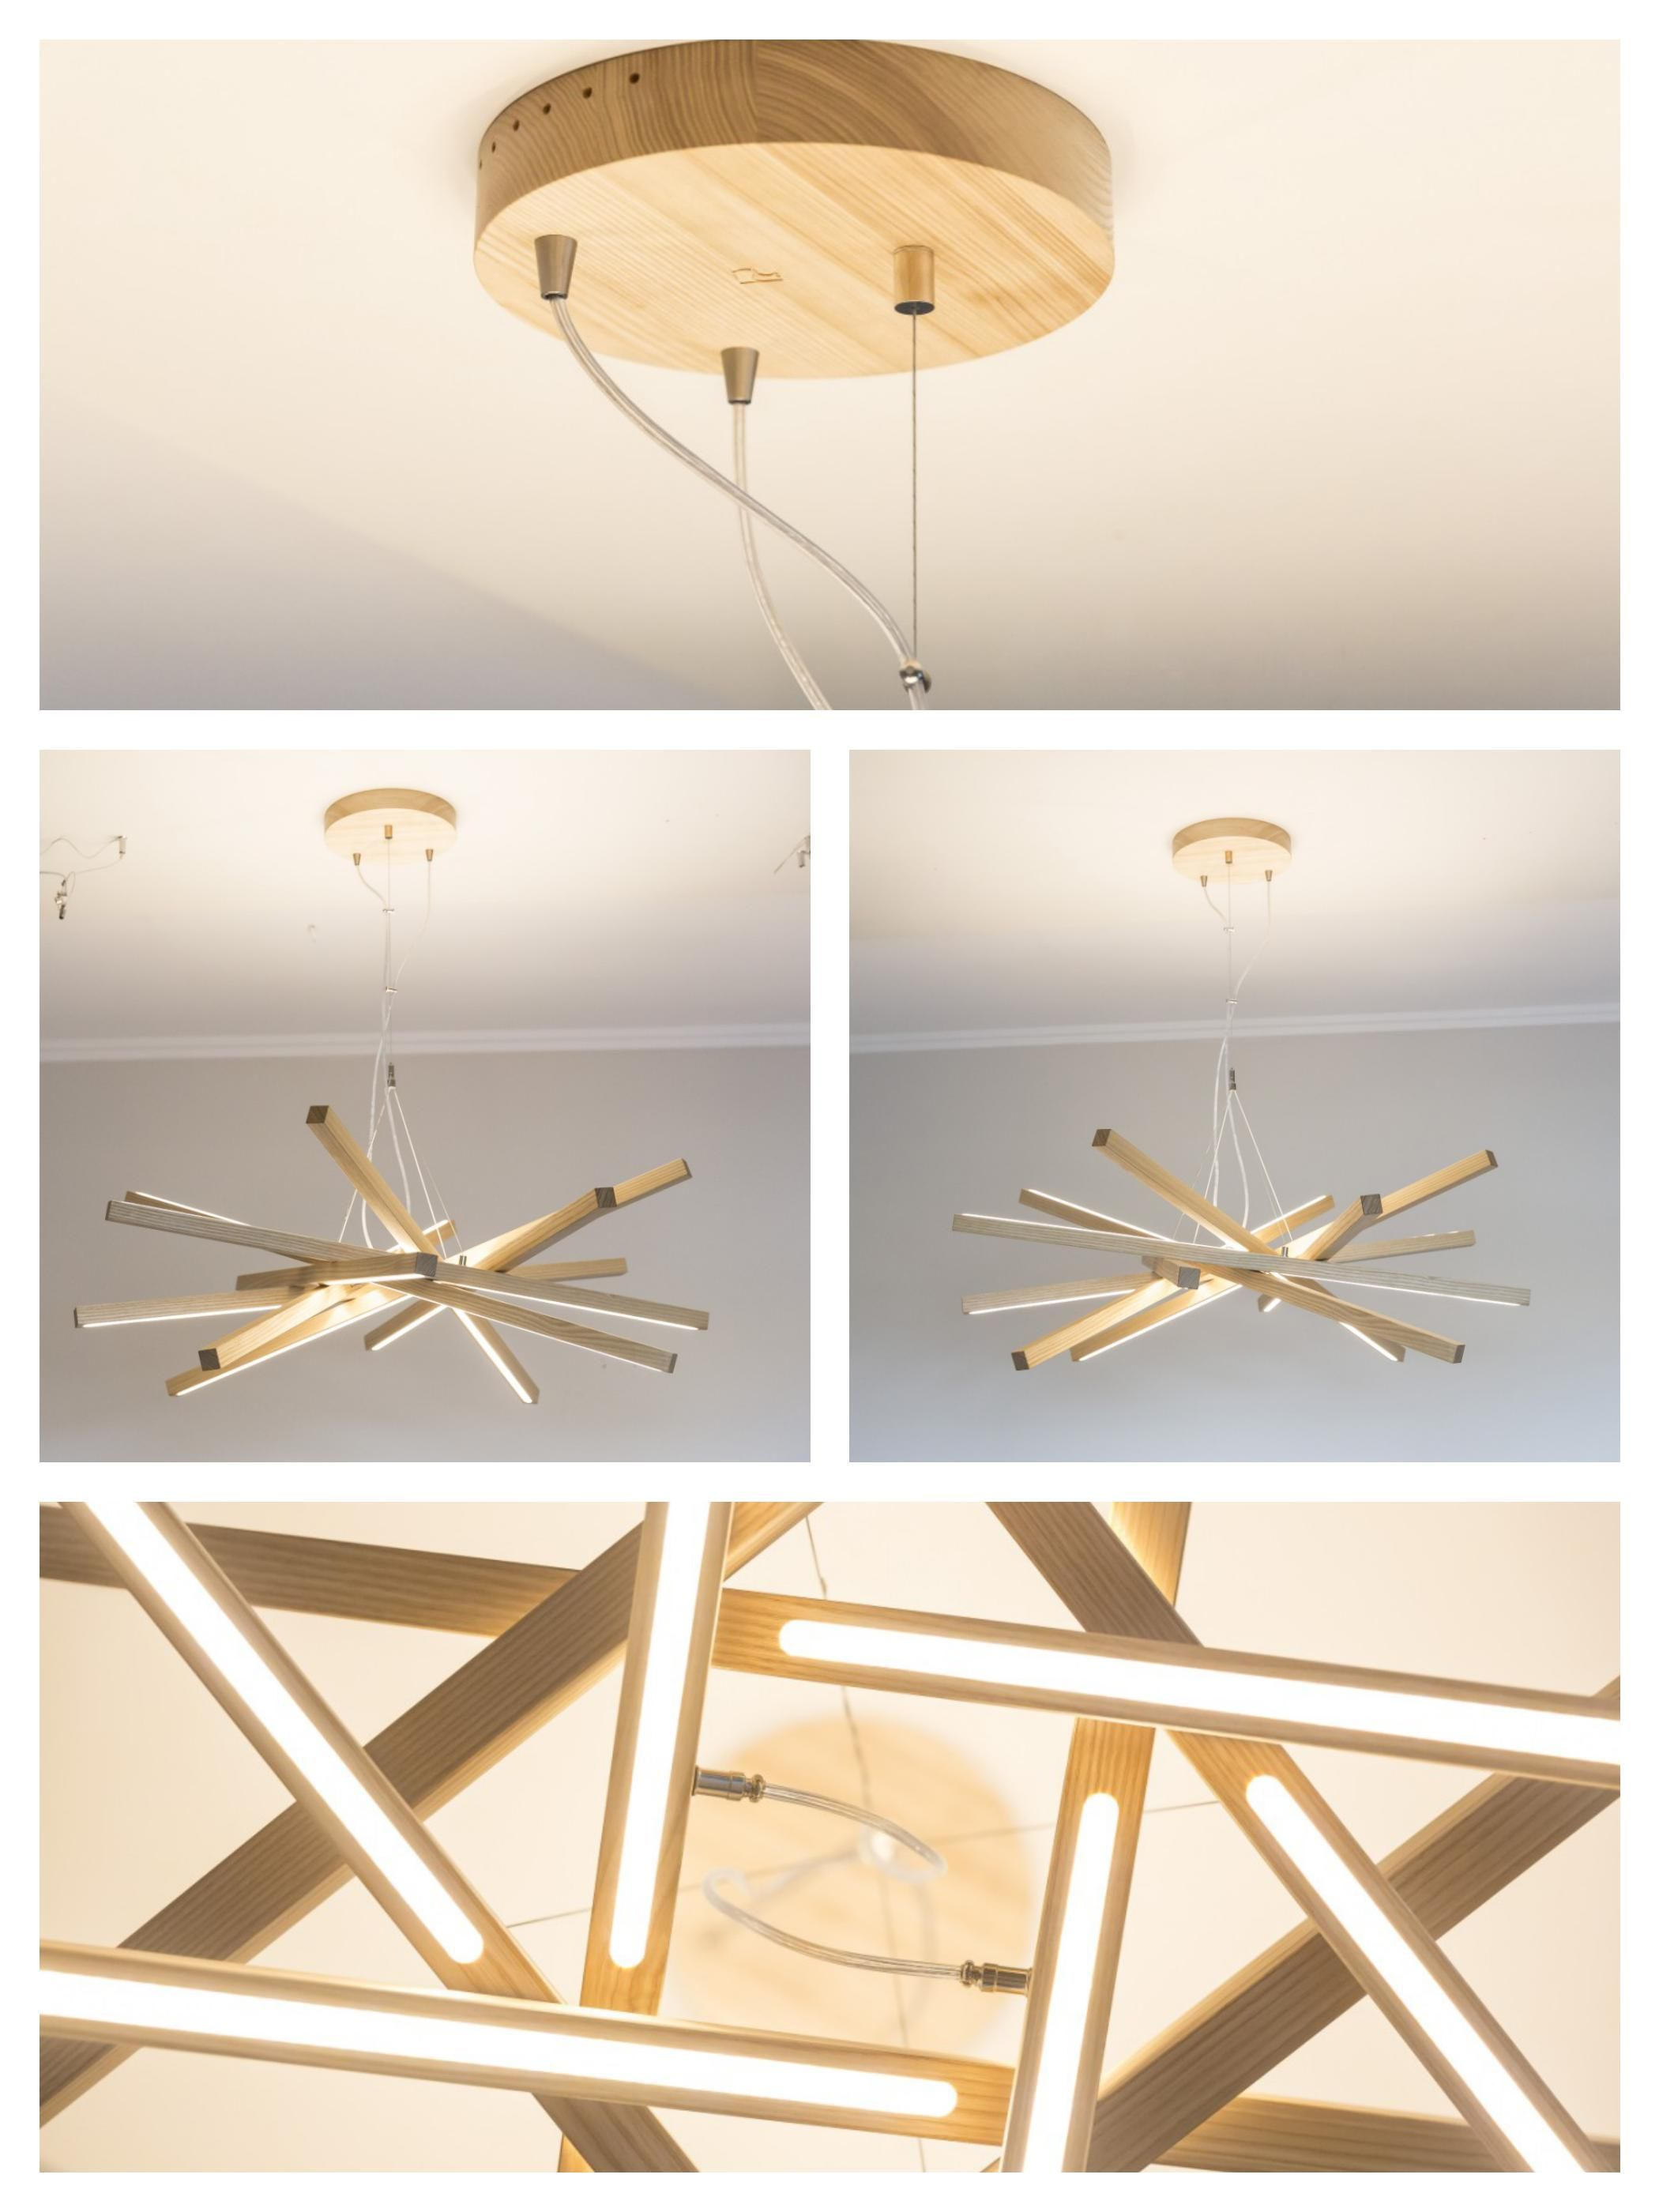 Original And Unique Wooden Chandelier With Led Lighting Lighting Wood Lighting High Tech Chandelier Wood Light Fixture Wood Wall Lamps Wooden Light Fixtures